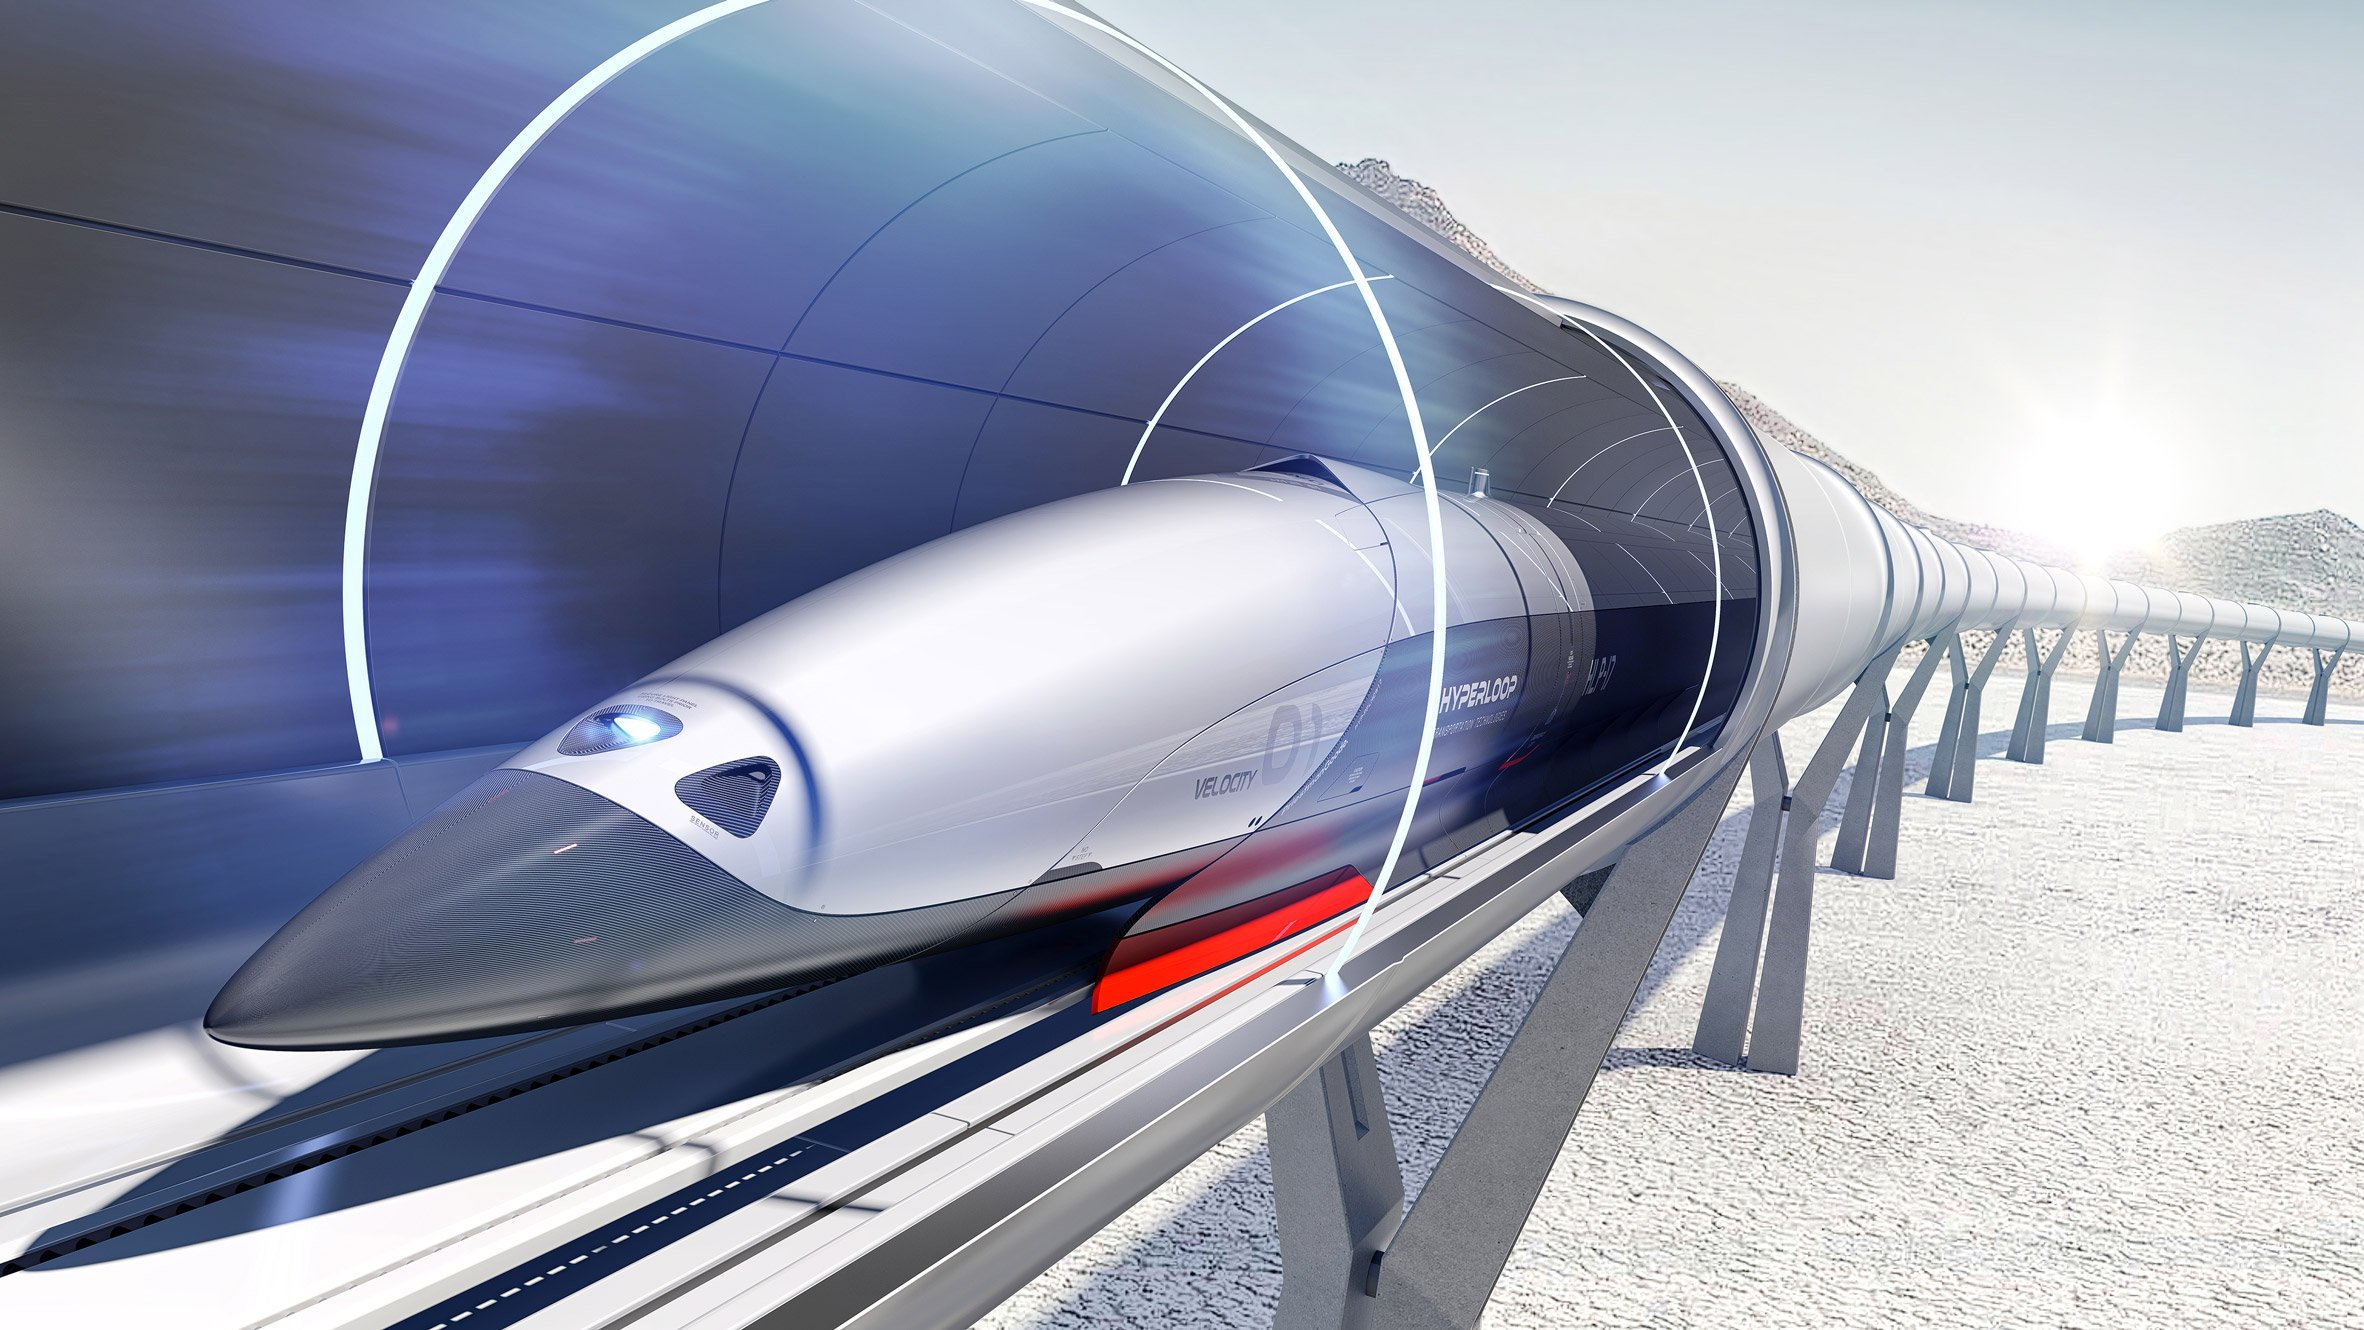 hyperloop, hyperloop technology, hyperloop transportation technologies, hyperloop dubai